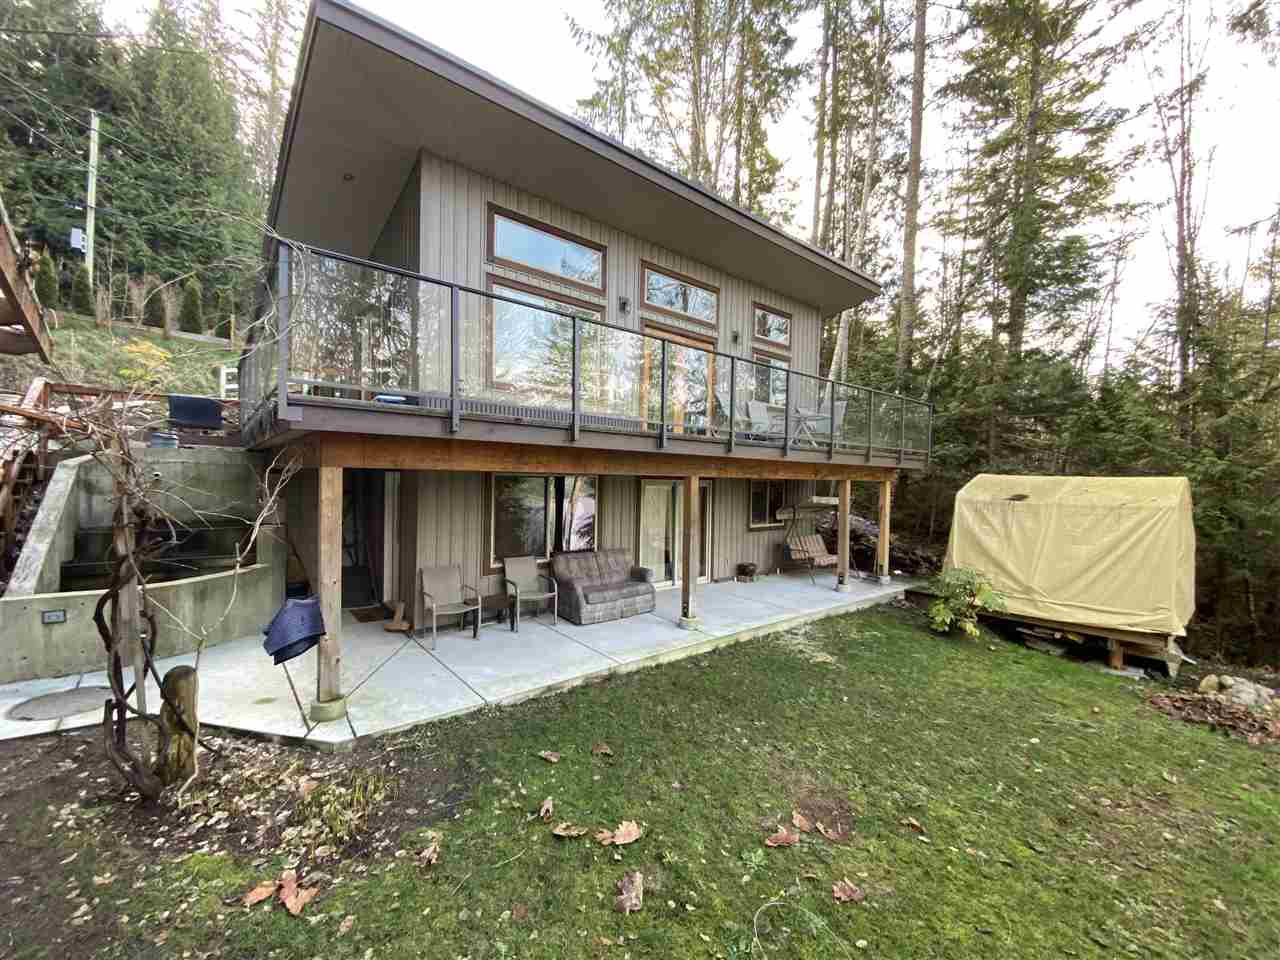 Main Photo: 5876 SANDY HOOK Road in Sechelt: Sechelt District House for sale (Sunshine Coast)  : MLS®# R2440008